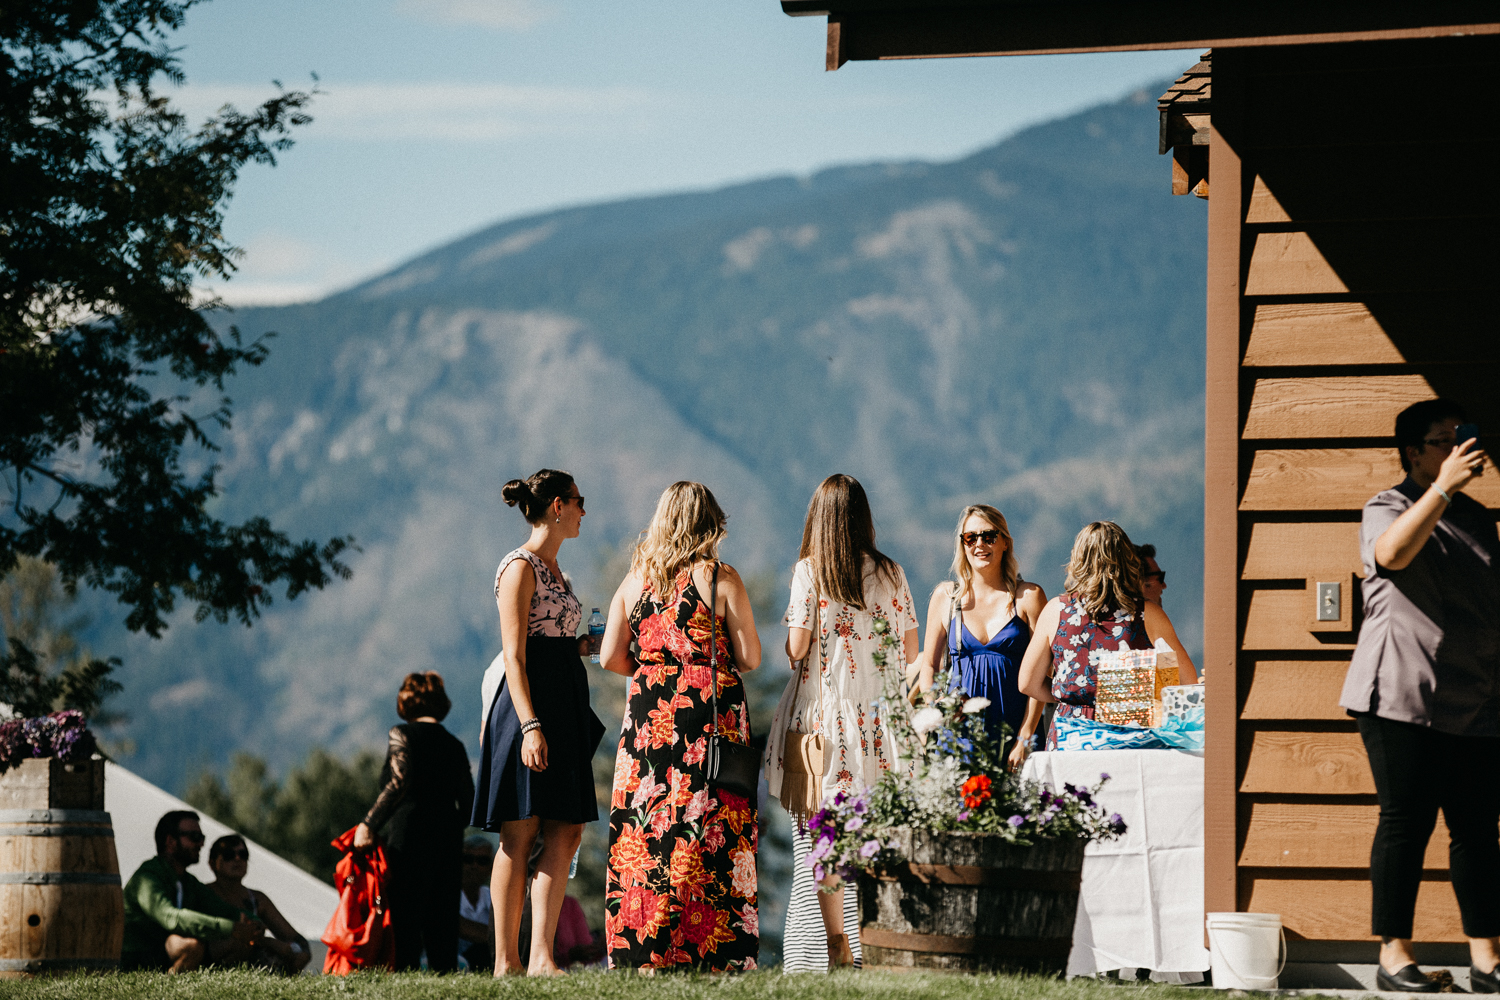 Guests wait at ceremony site Pemberton Farm wedding